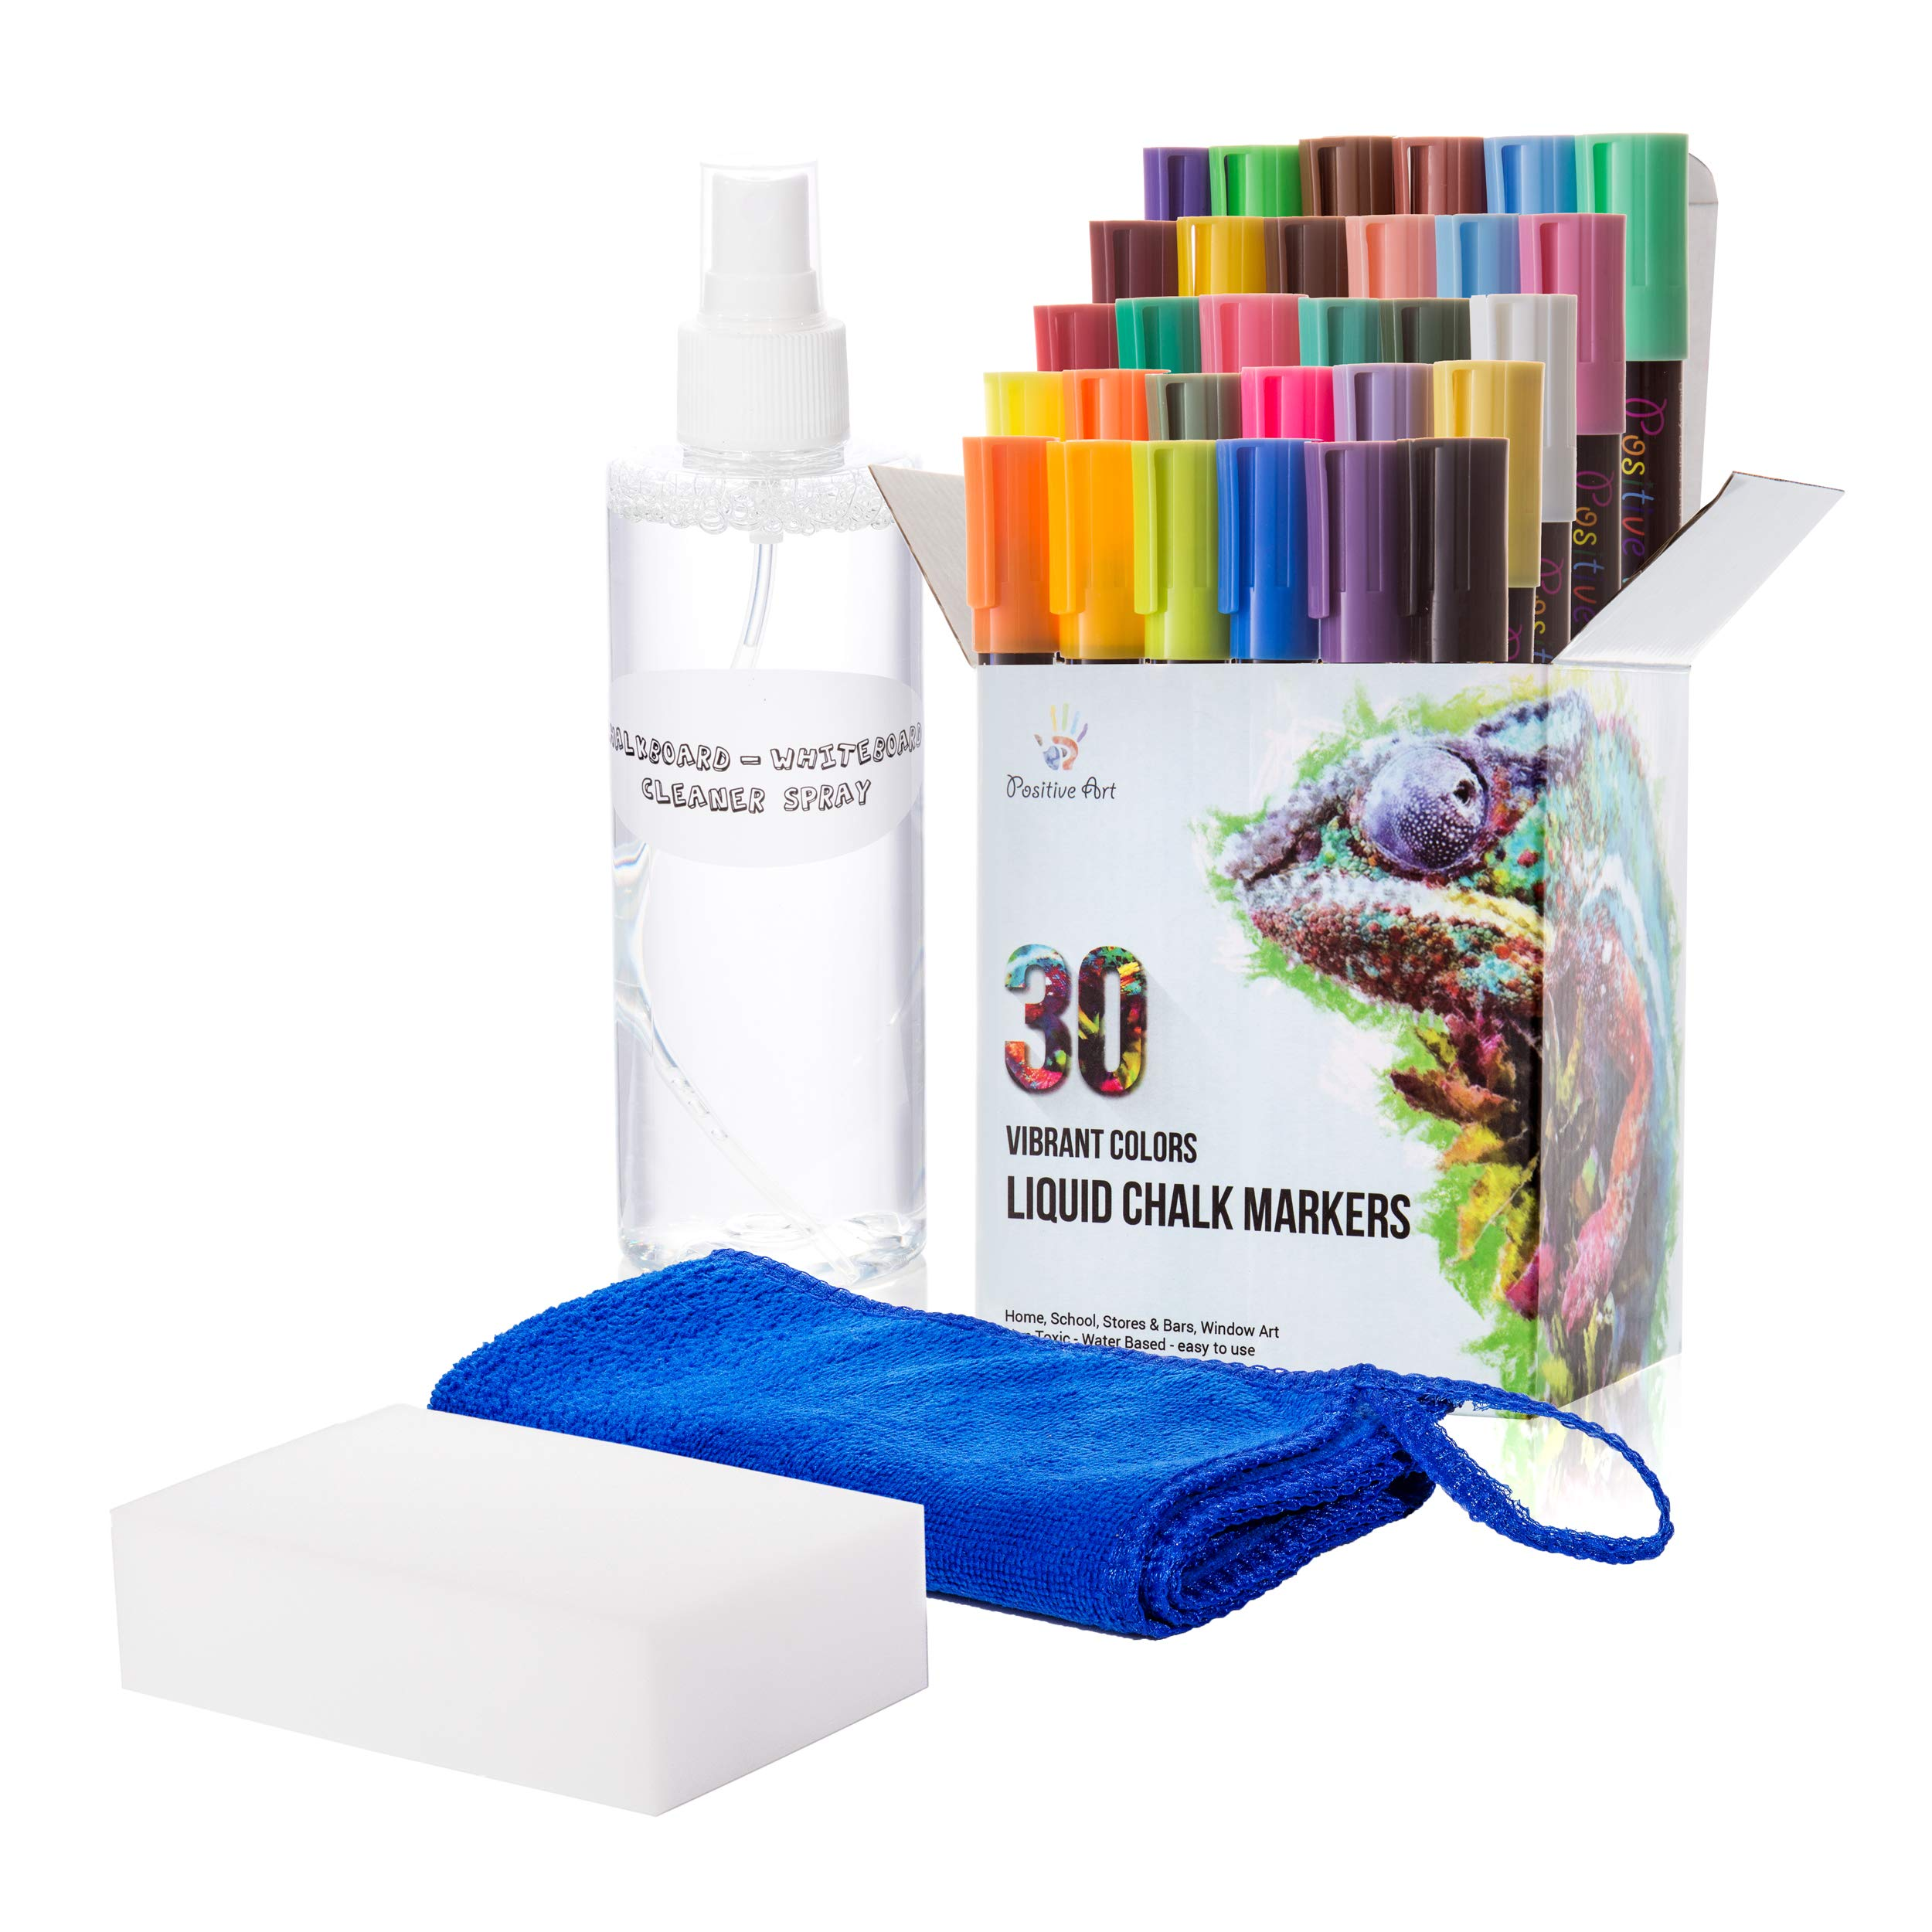 Liquid Chalk Markers 30 Colors By Positive Art: Bright Colors, Painting and Drawing For Kids and Adults, Window and Board Art For Bistros, Bars - Reversible Tip (Chalk Markers With Cleaner Set)